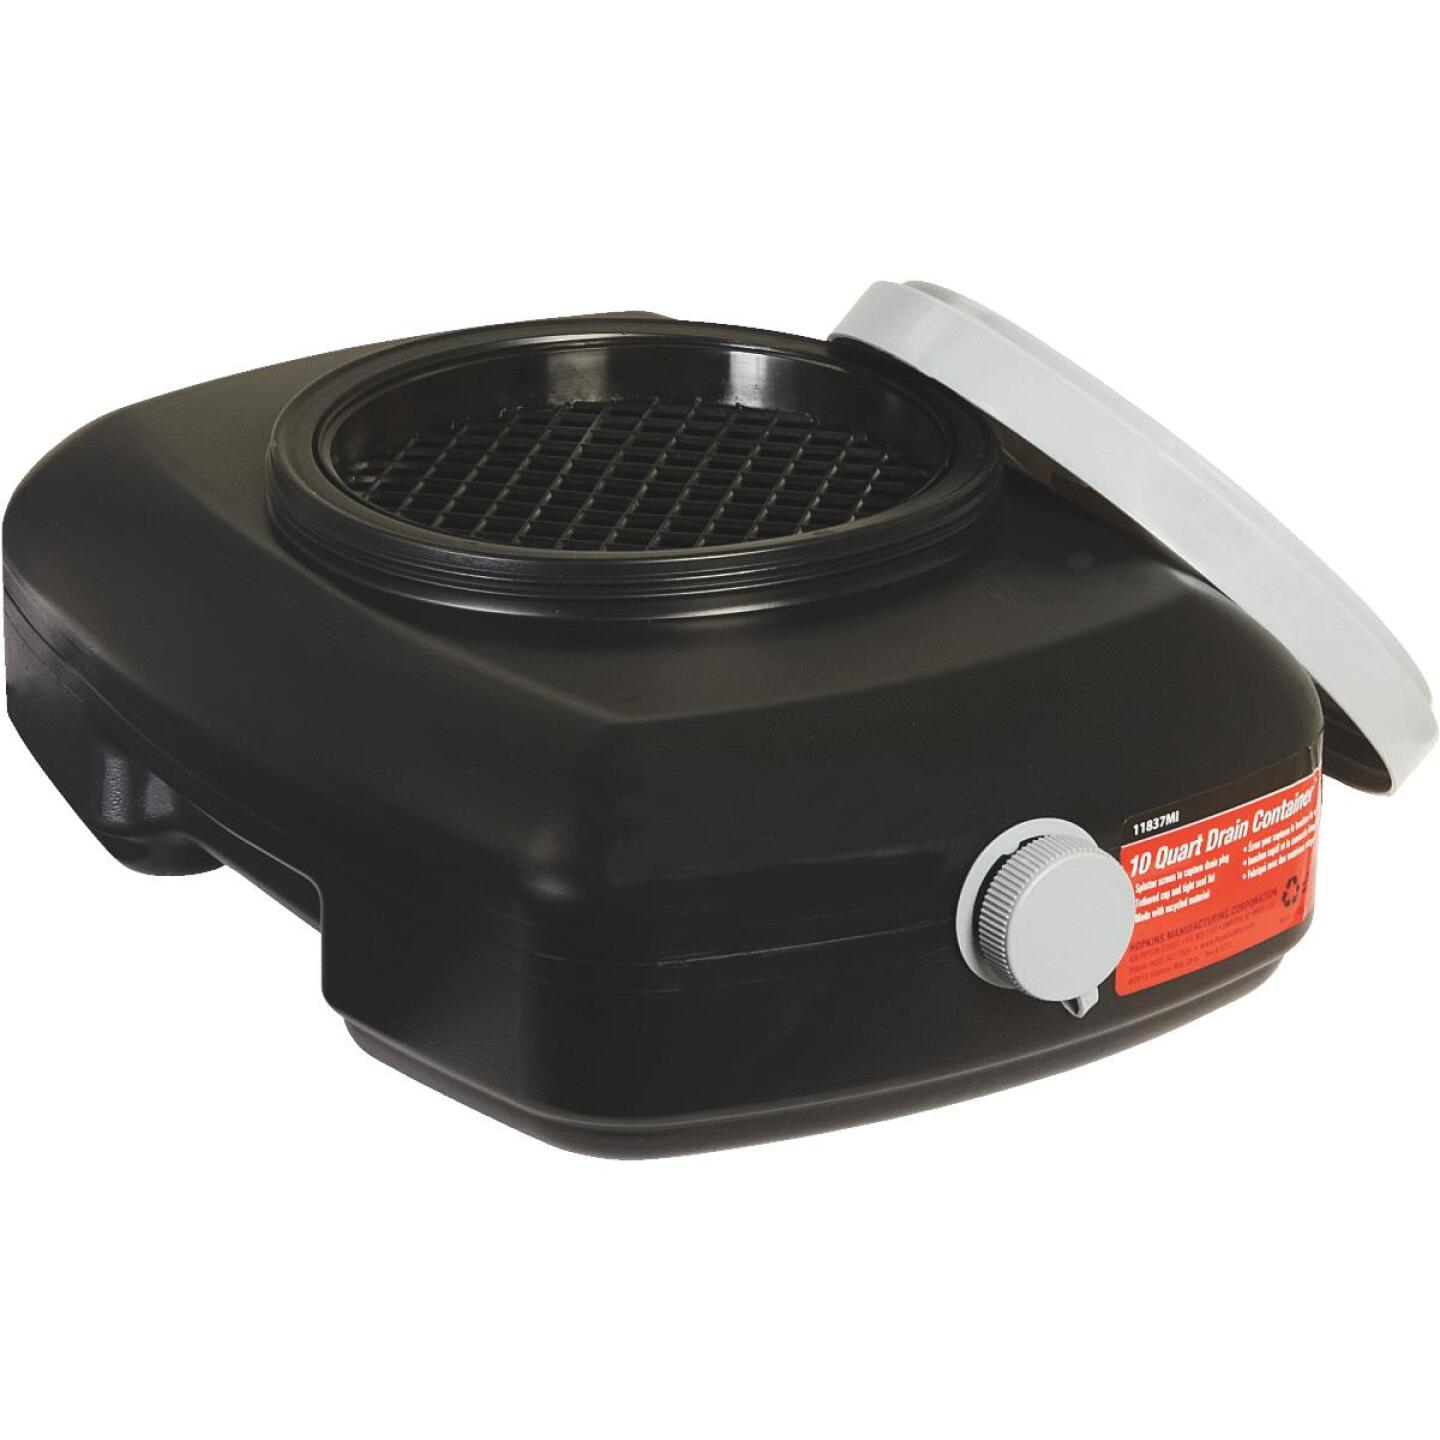 Hopkins Flotool 10 Qt Black Polyethylene Oil Drain Pan Image 2